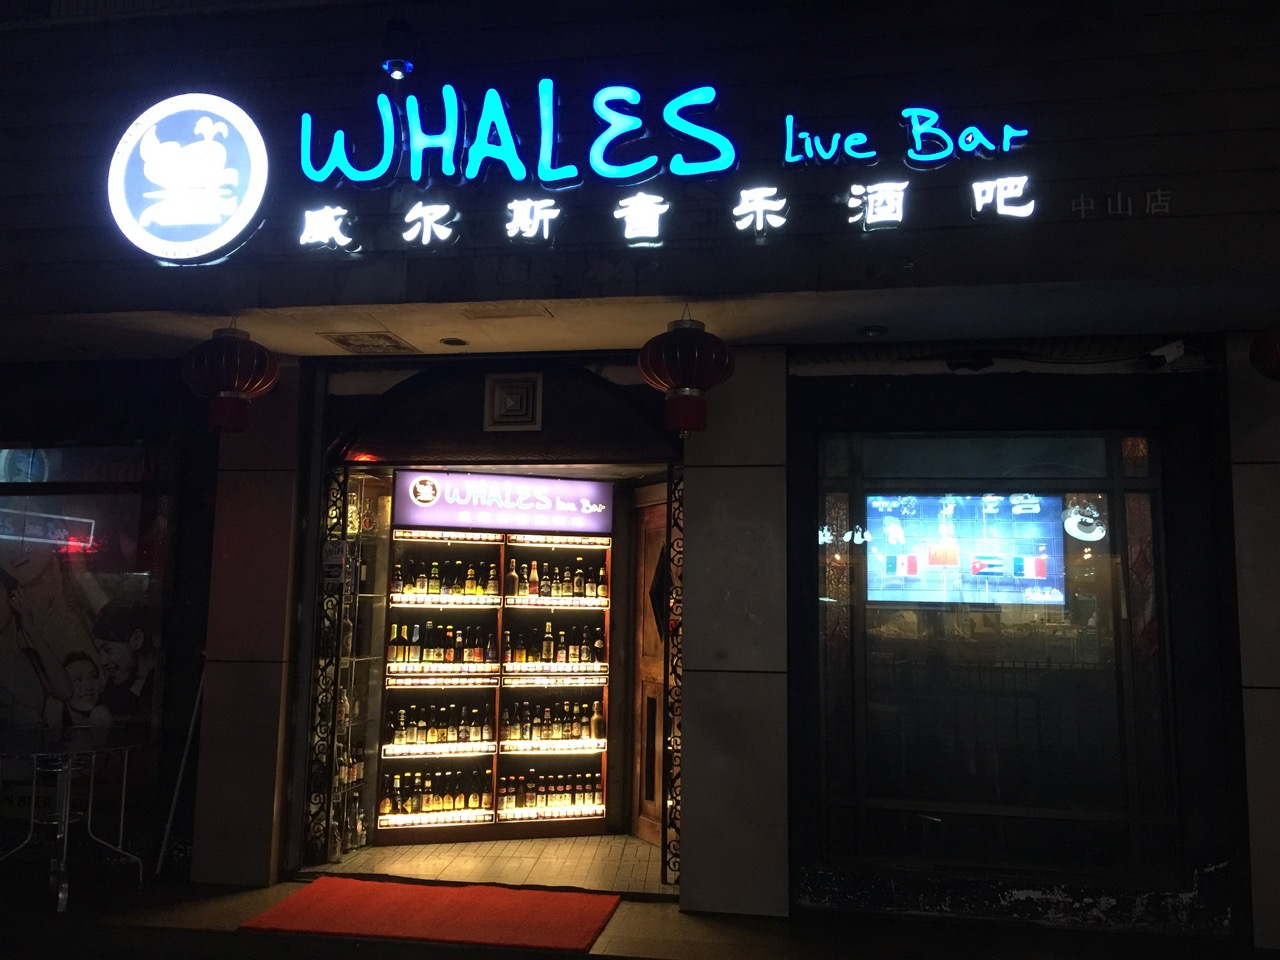 The entrance to the smaller Whales Live Bar